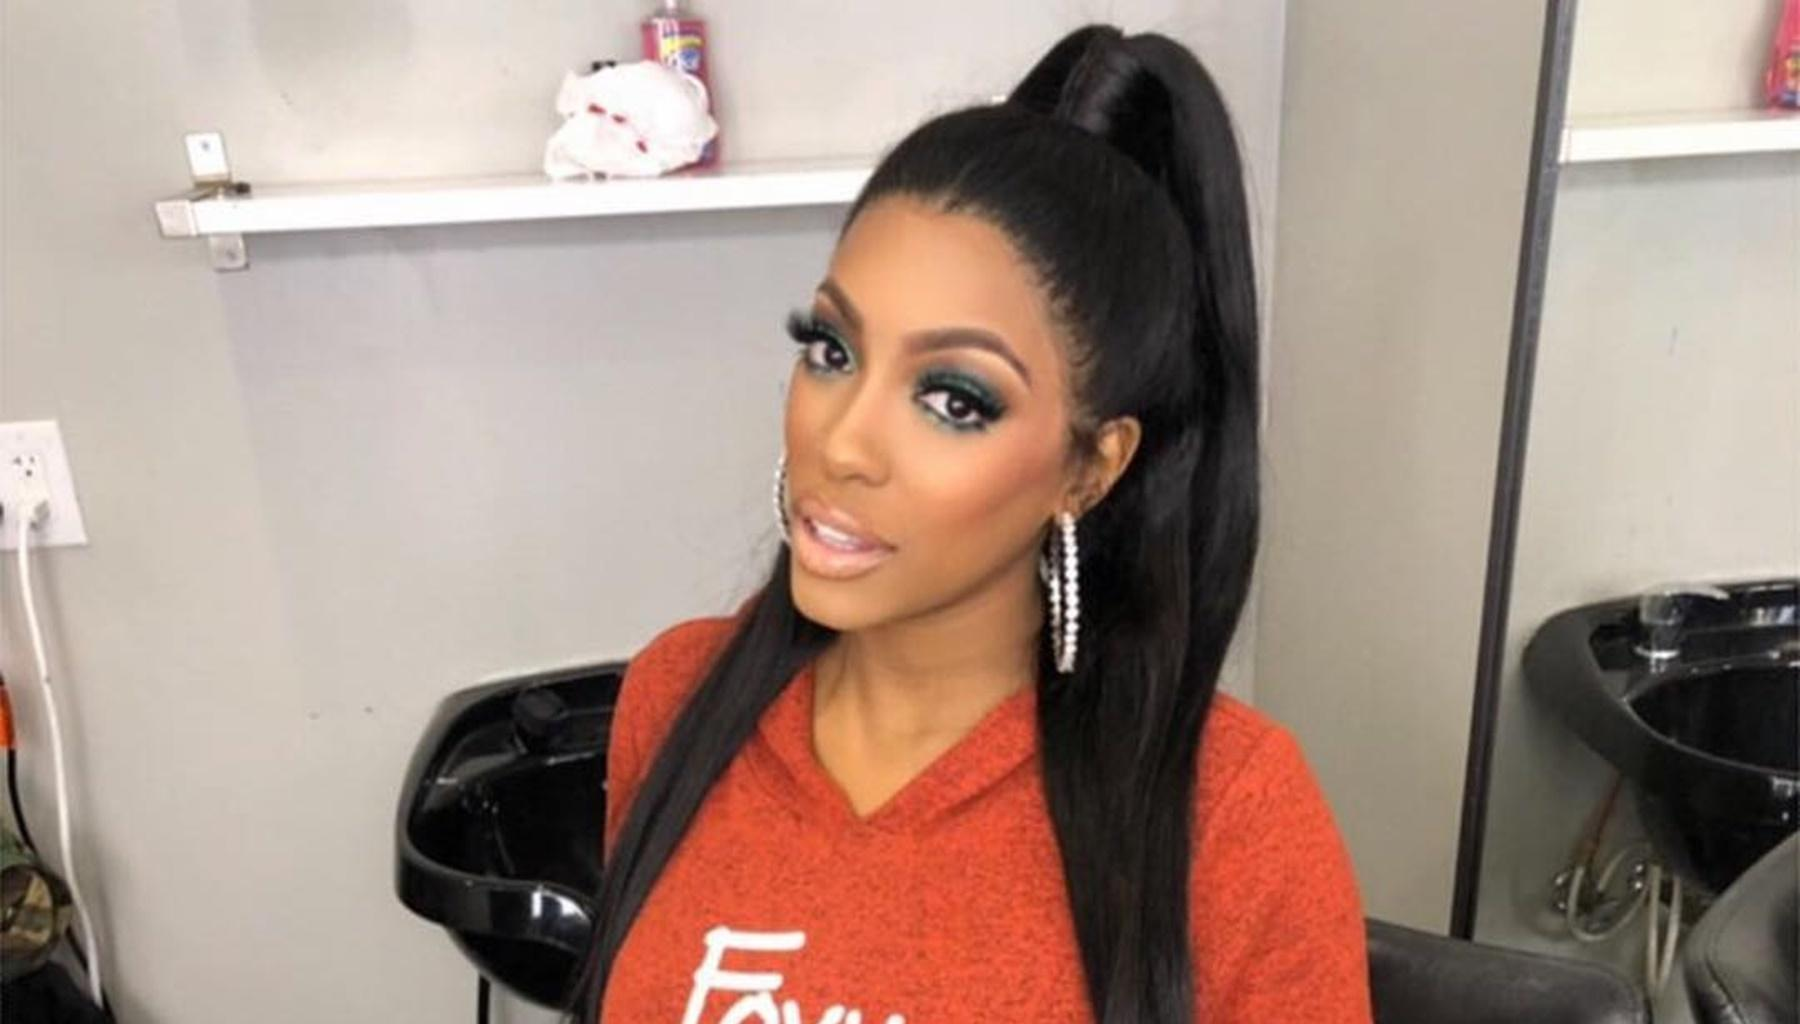 Porsha Williams' Toronto Carnival Pics Have Fans Praising Her And The Other RHOA Ladies - See Why People Criticize Kenya Moore's Look